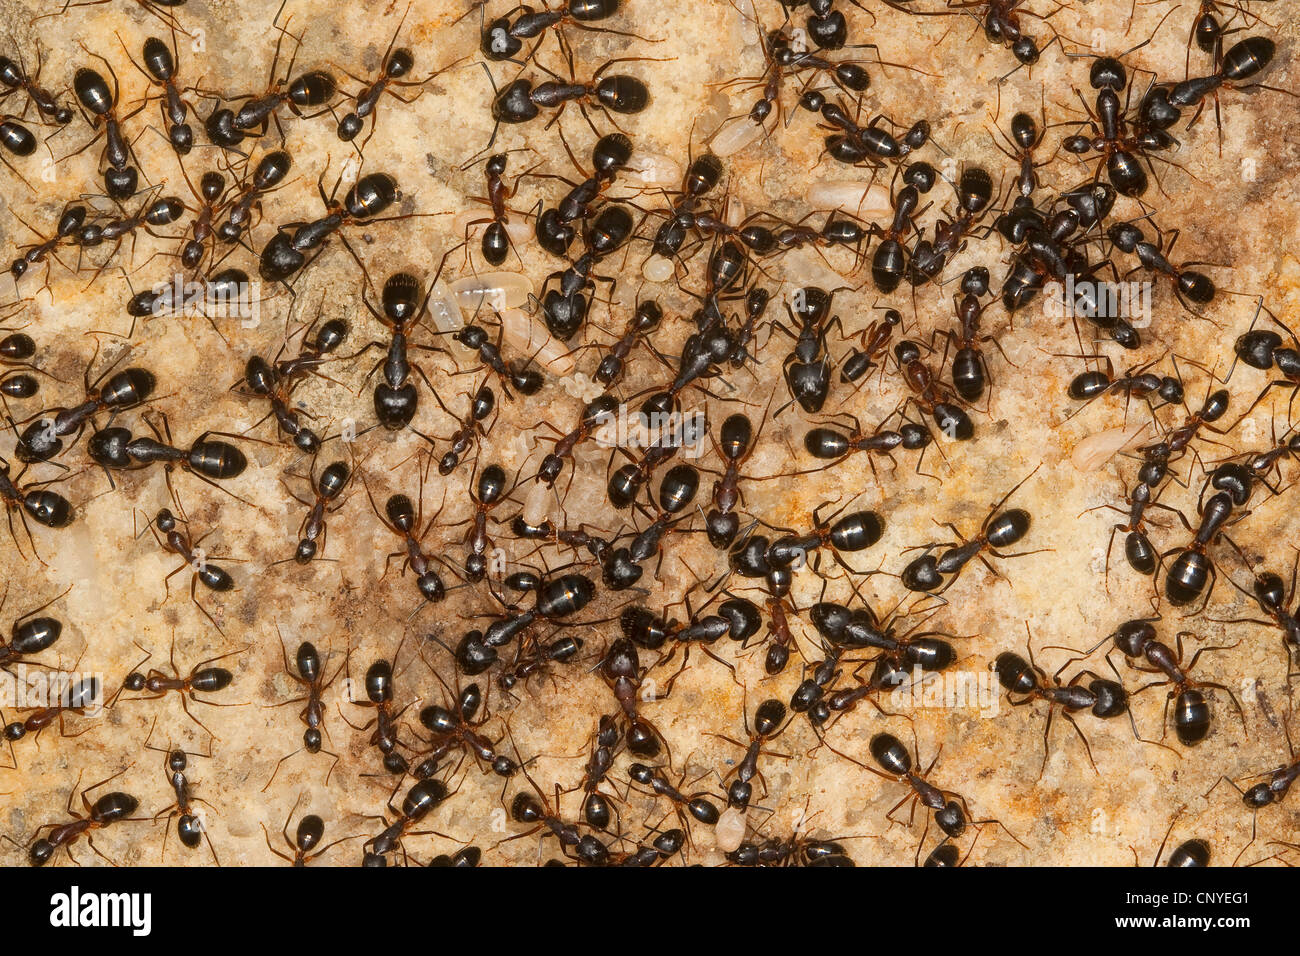 carpenter ants (Camponotus spec.), in the nest with pupas and larvae, Italy, Sicilia - Stock Image